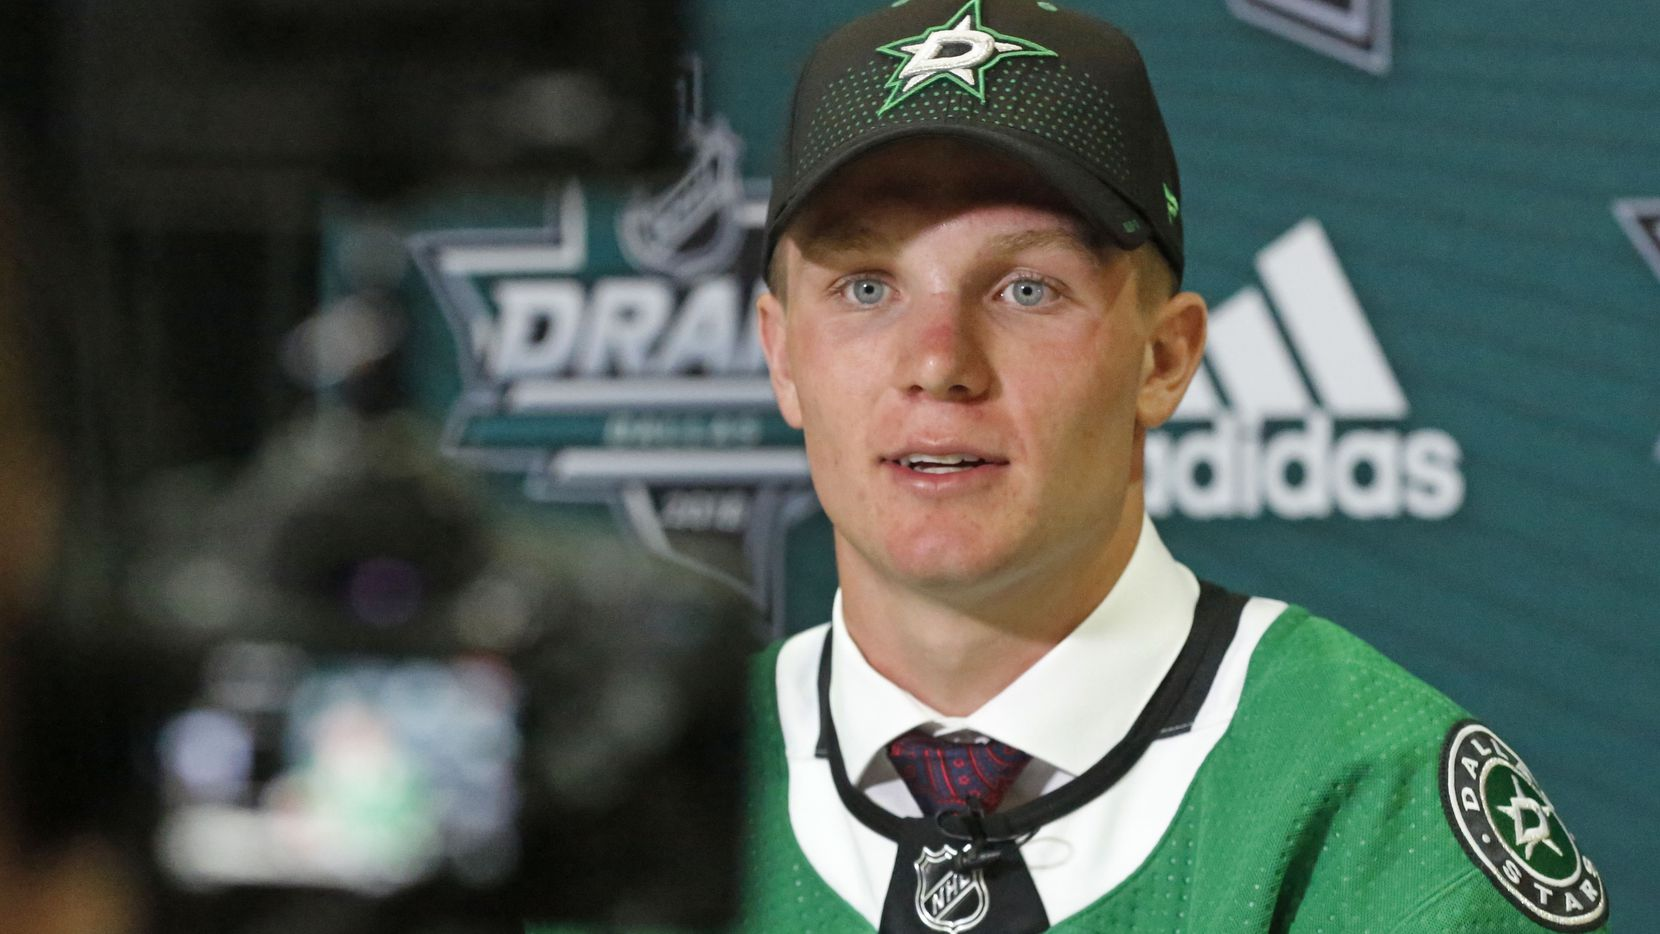 Dallas Stars first round draft pick Ty Dellandrea talks with the media after being selected with the Dallas Stars first draft pick at the 2018 National Hockey League draft held at the American Airlines Center in Dallas on Friday, June 22, 2018. (Louis DeLuca/The Dallas Morning News)